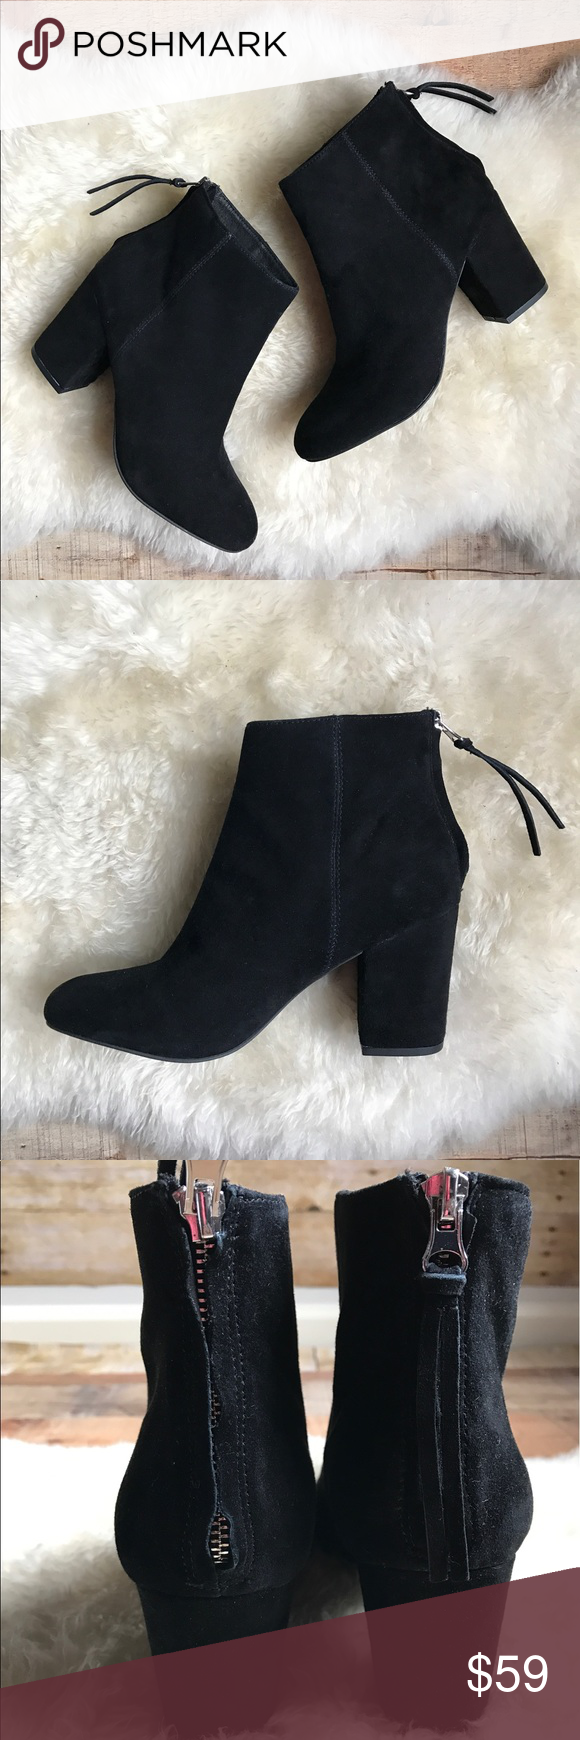 🆕 Steve Madden Cynthia Ankle Boot